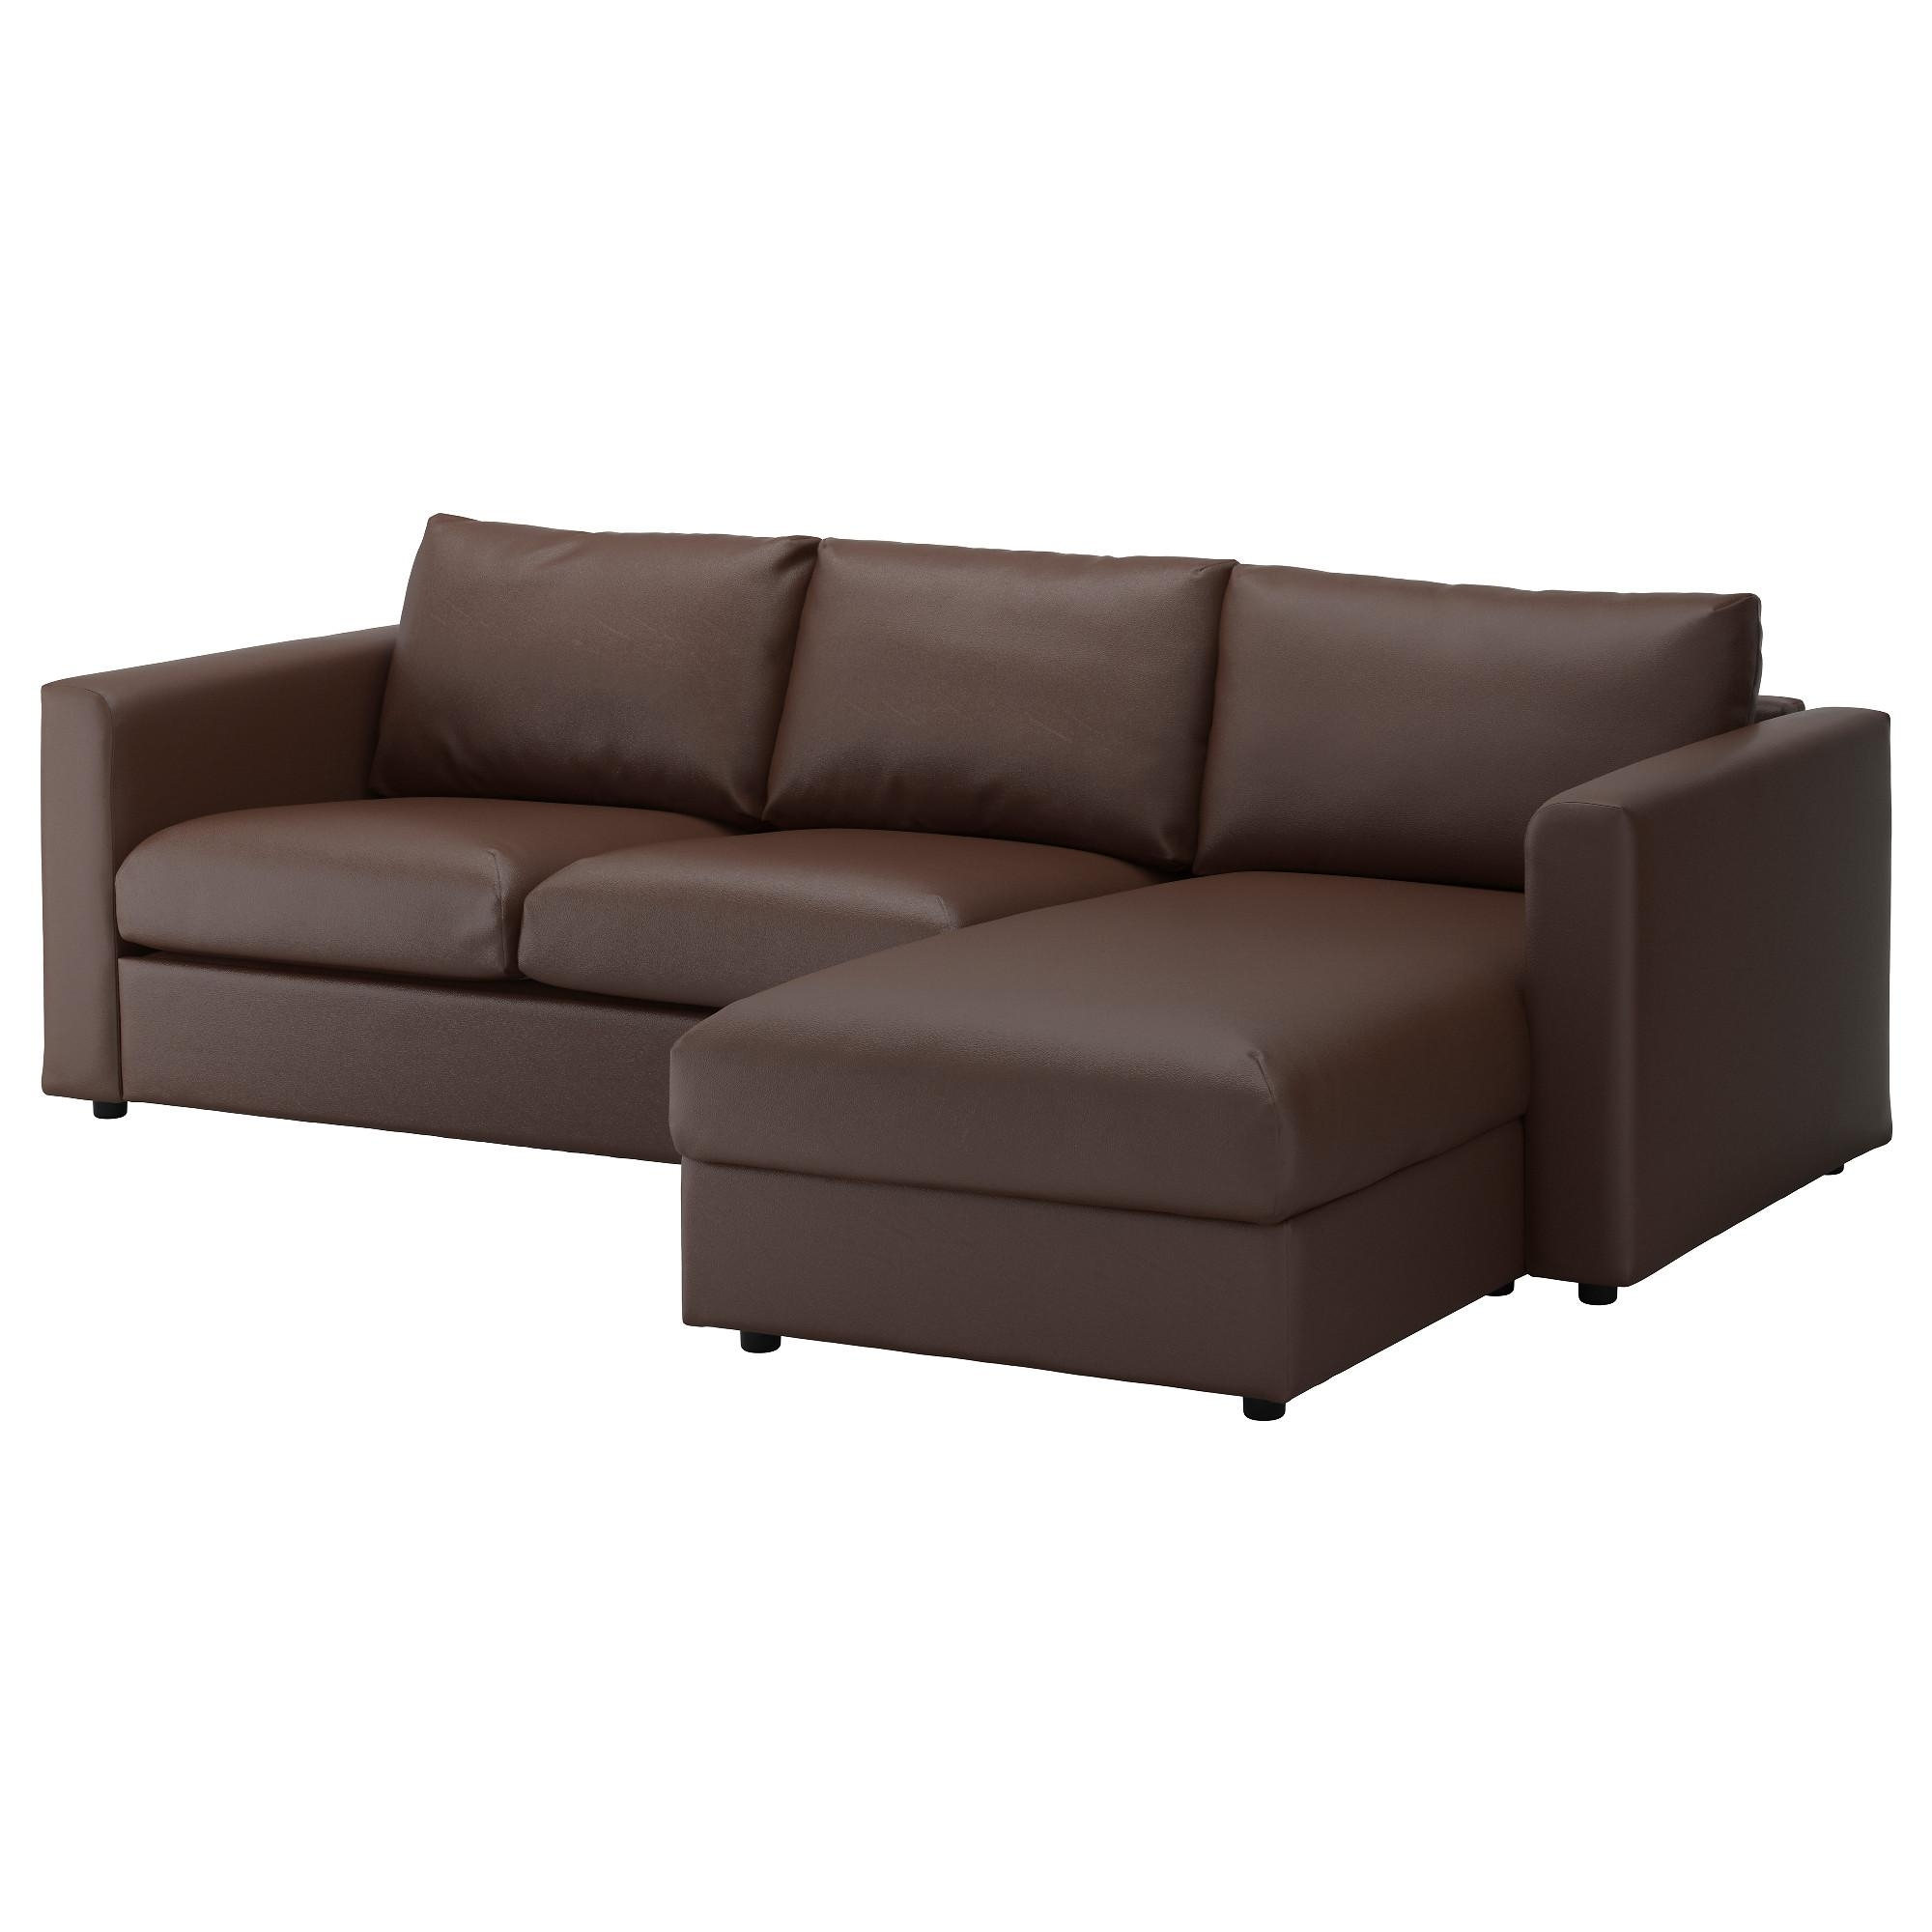 Sectional Sofas & Couches – Ikea Intended For Pit Sofas (View 14 of 20)